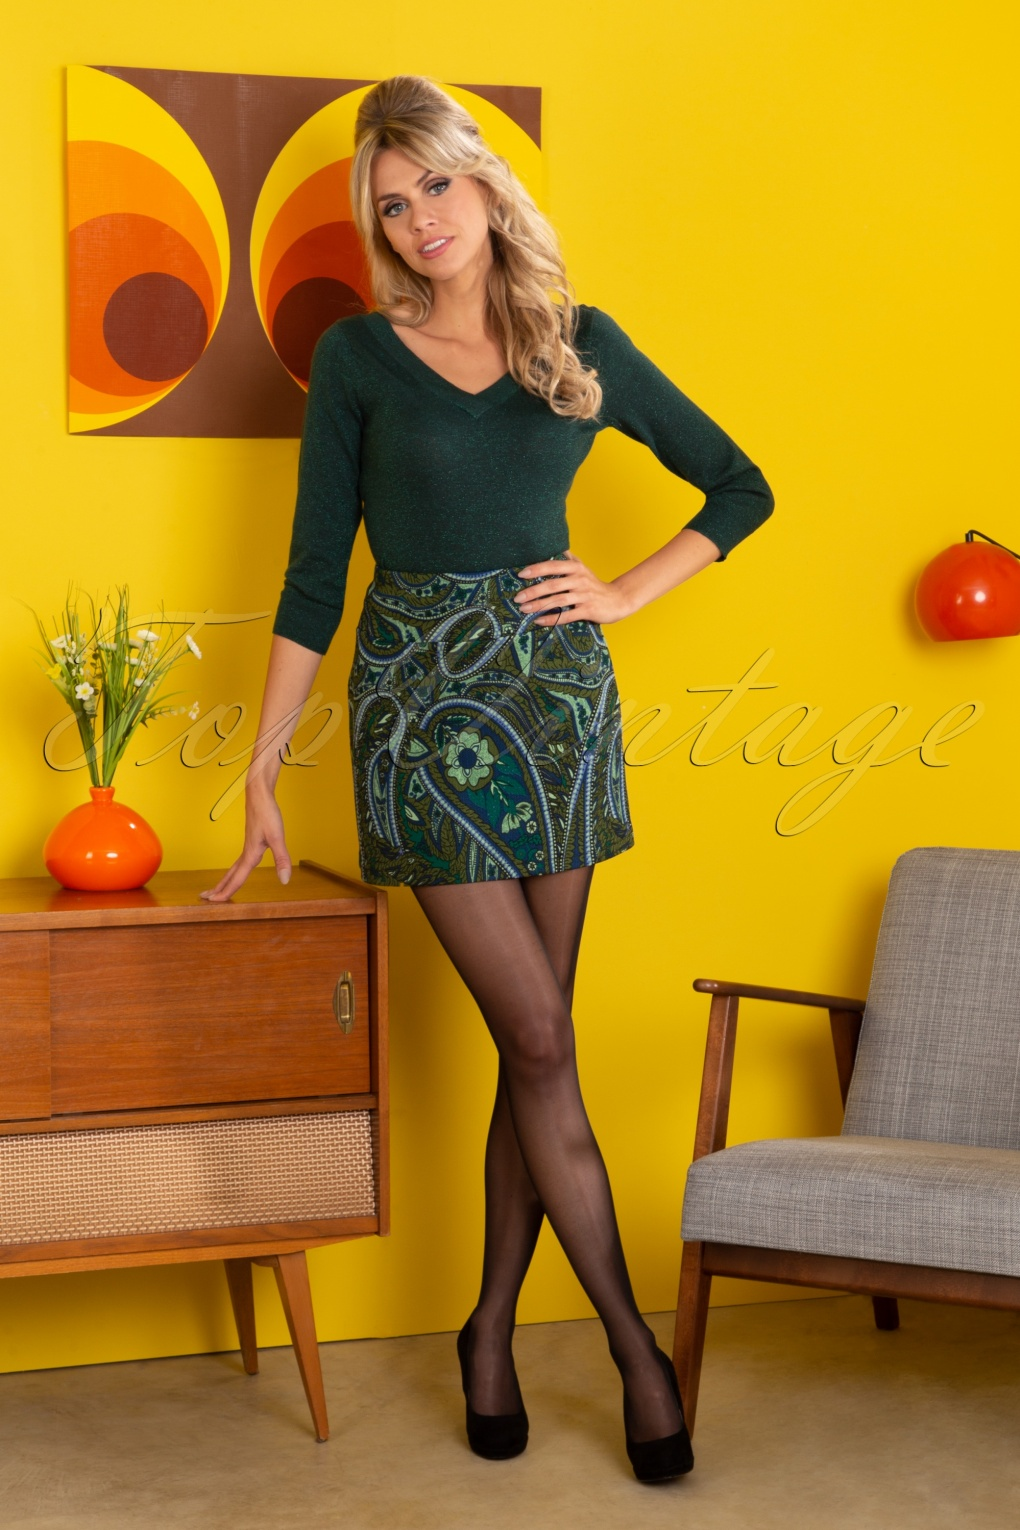 Retro Skirts: Vintage, Pencil, Circle, & Plus Sizes 60s Olivia Teardrop Skirt in Olive Green £62.35 AT vintagedancer.com